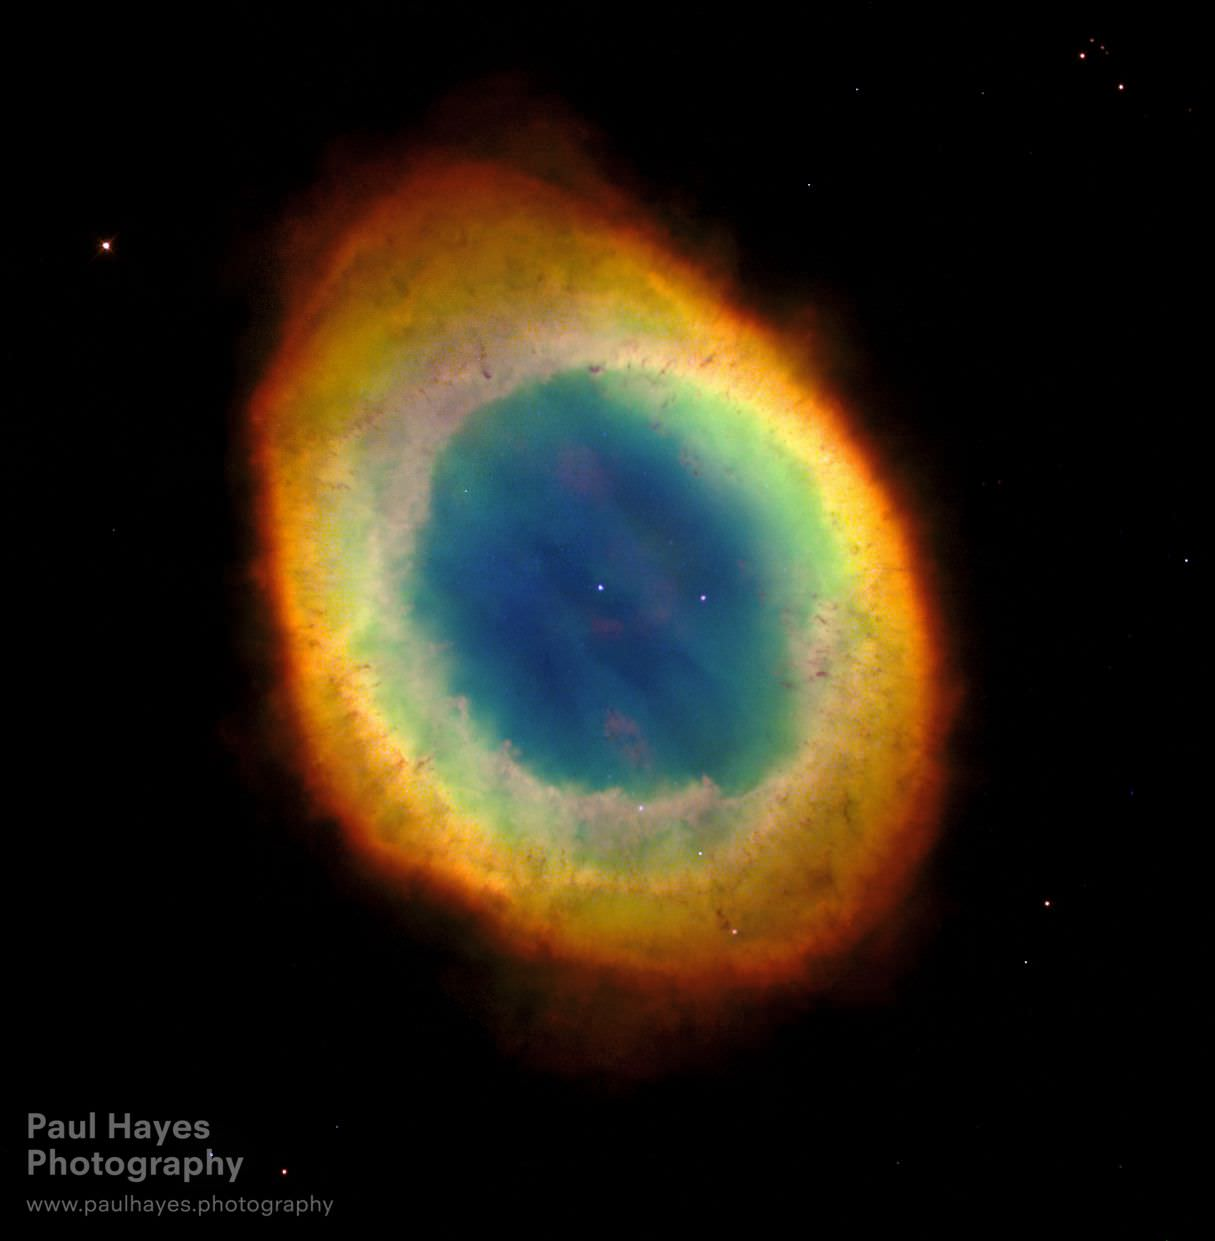 Ring Nebula (M57) by The Hubble Heritage Team (AURA/STScI/NASA)